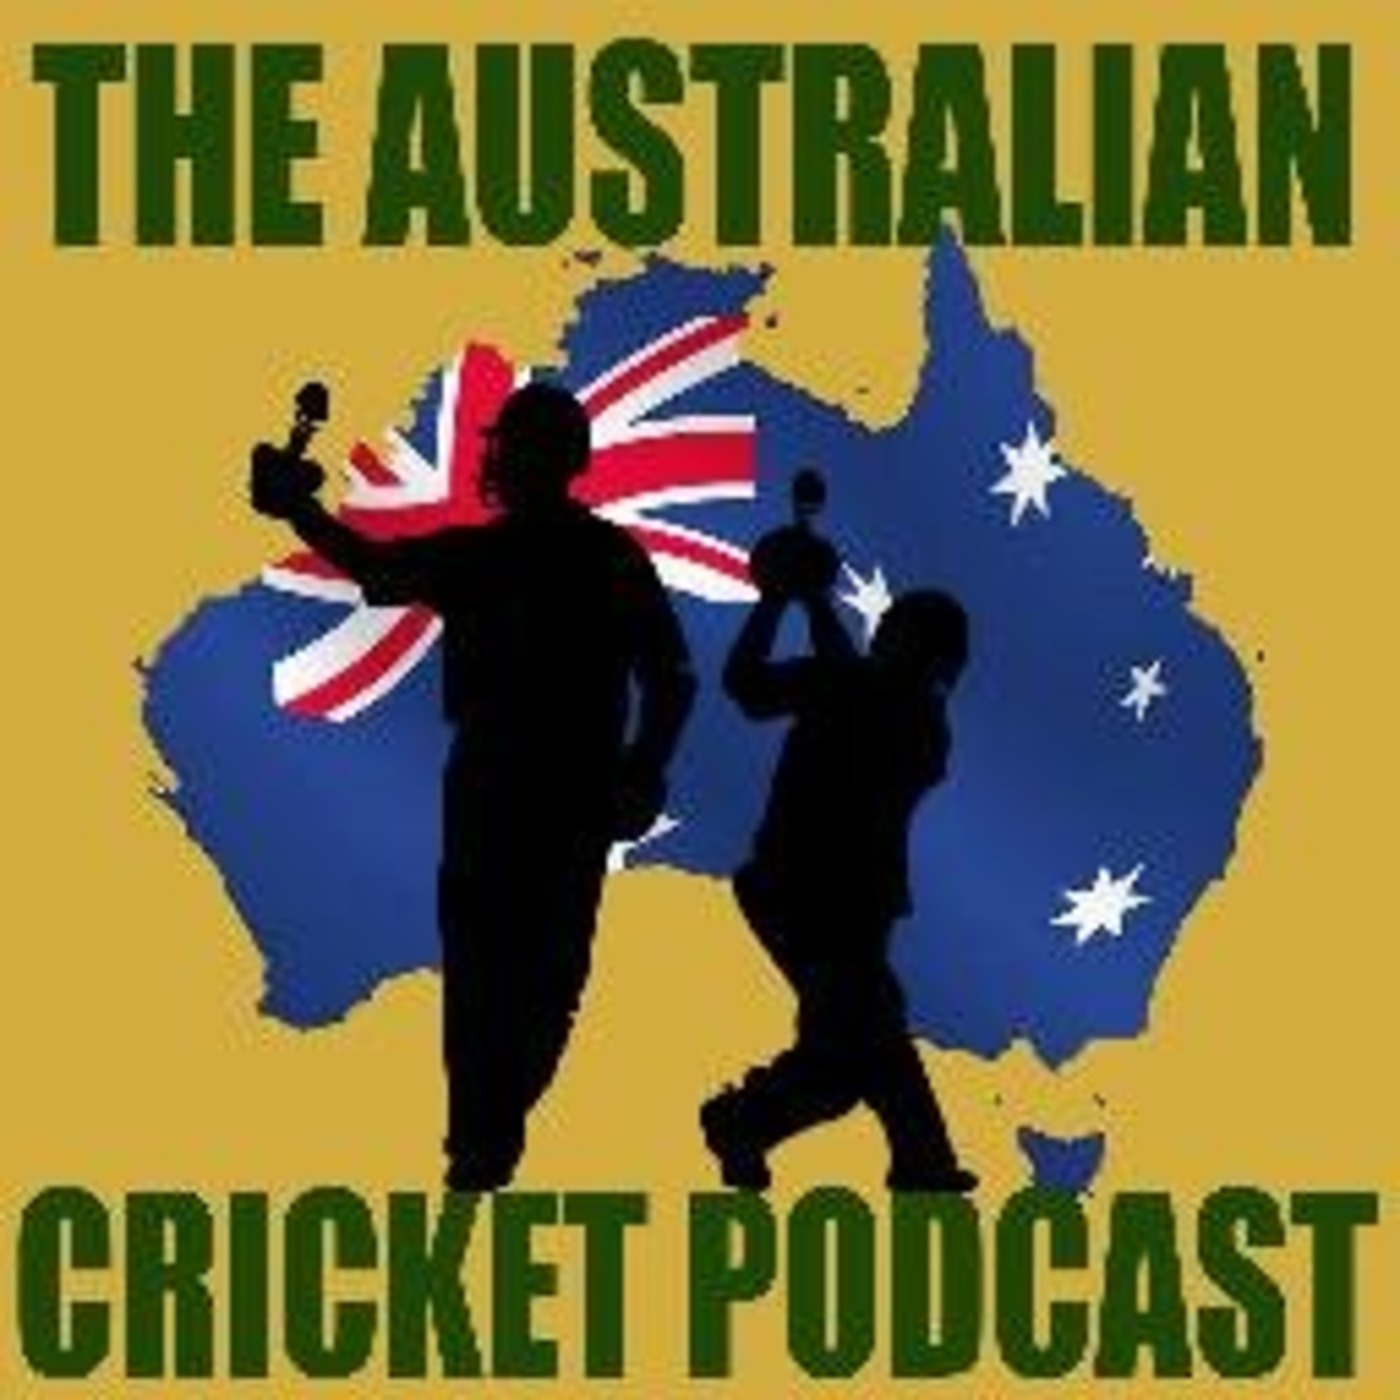 The Australian Cricket Podcast